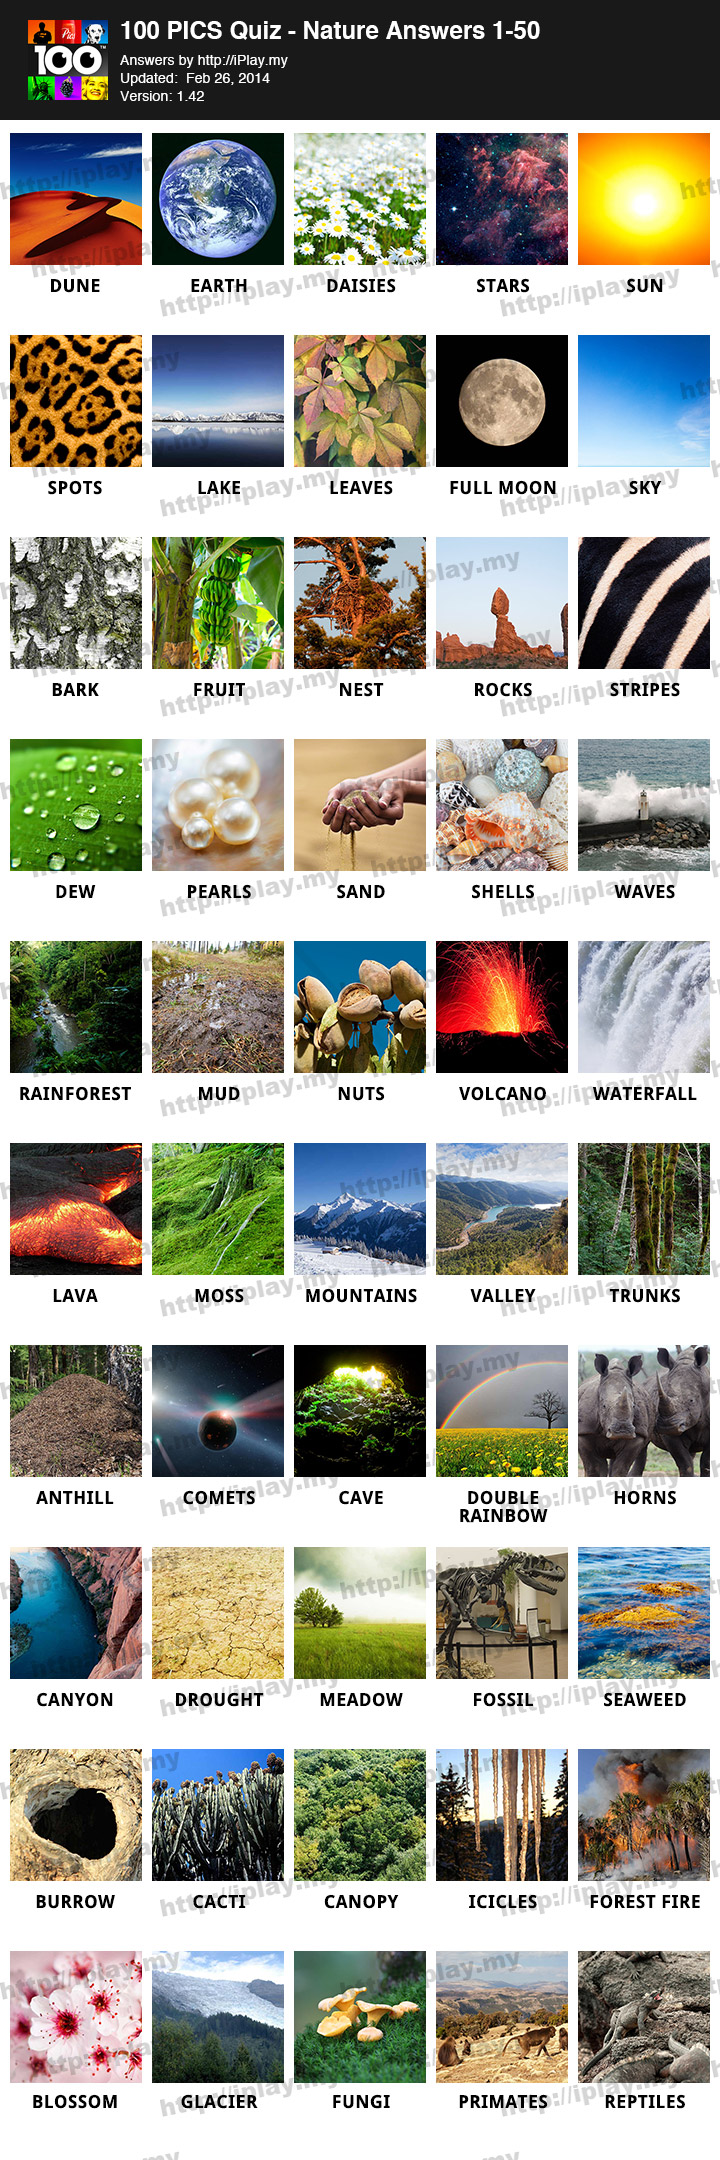 100-Pics-Quiz-Nature-Answers-1-50